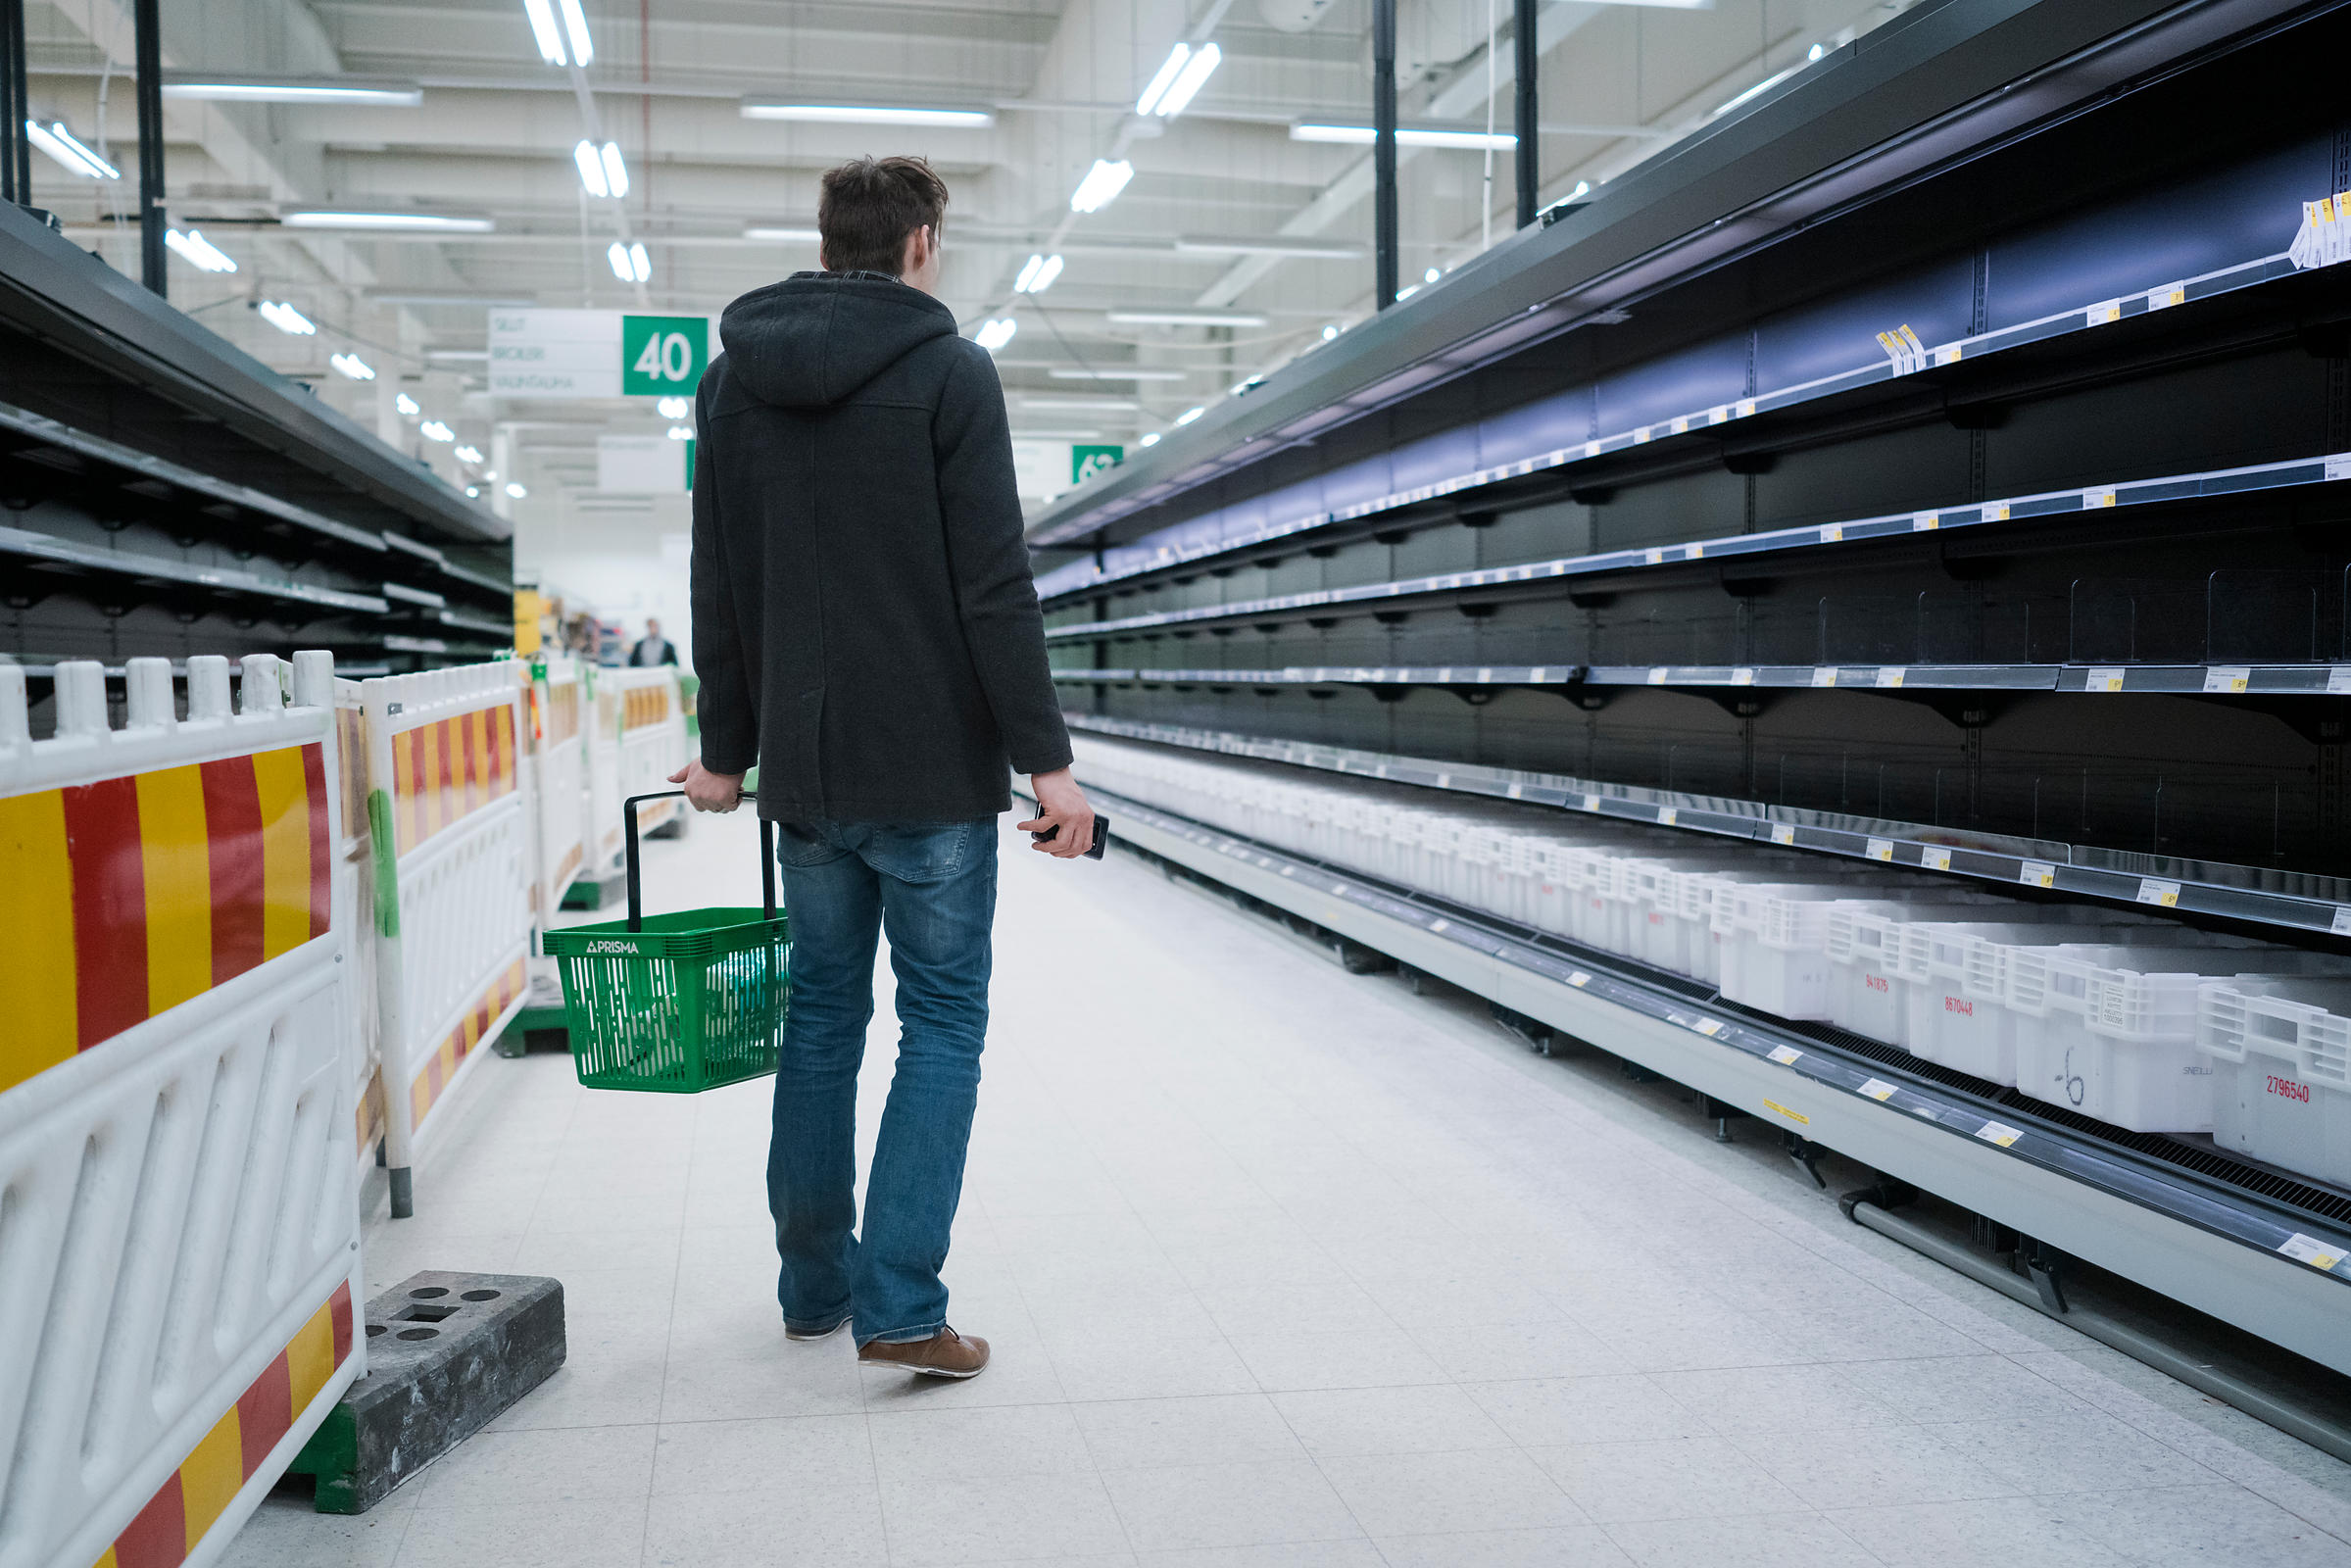 Corona diary: Friday 13th March 2020. The hypermarket was quieter than yesterday. Tourists were photographing the empty shelv...